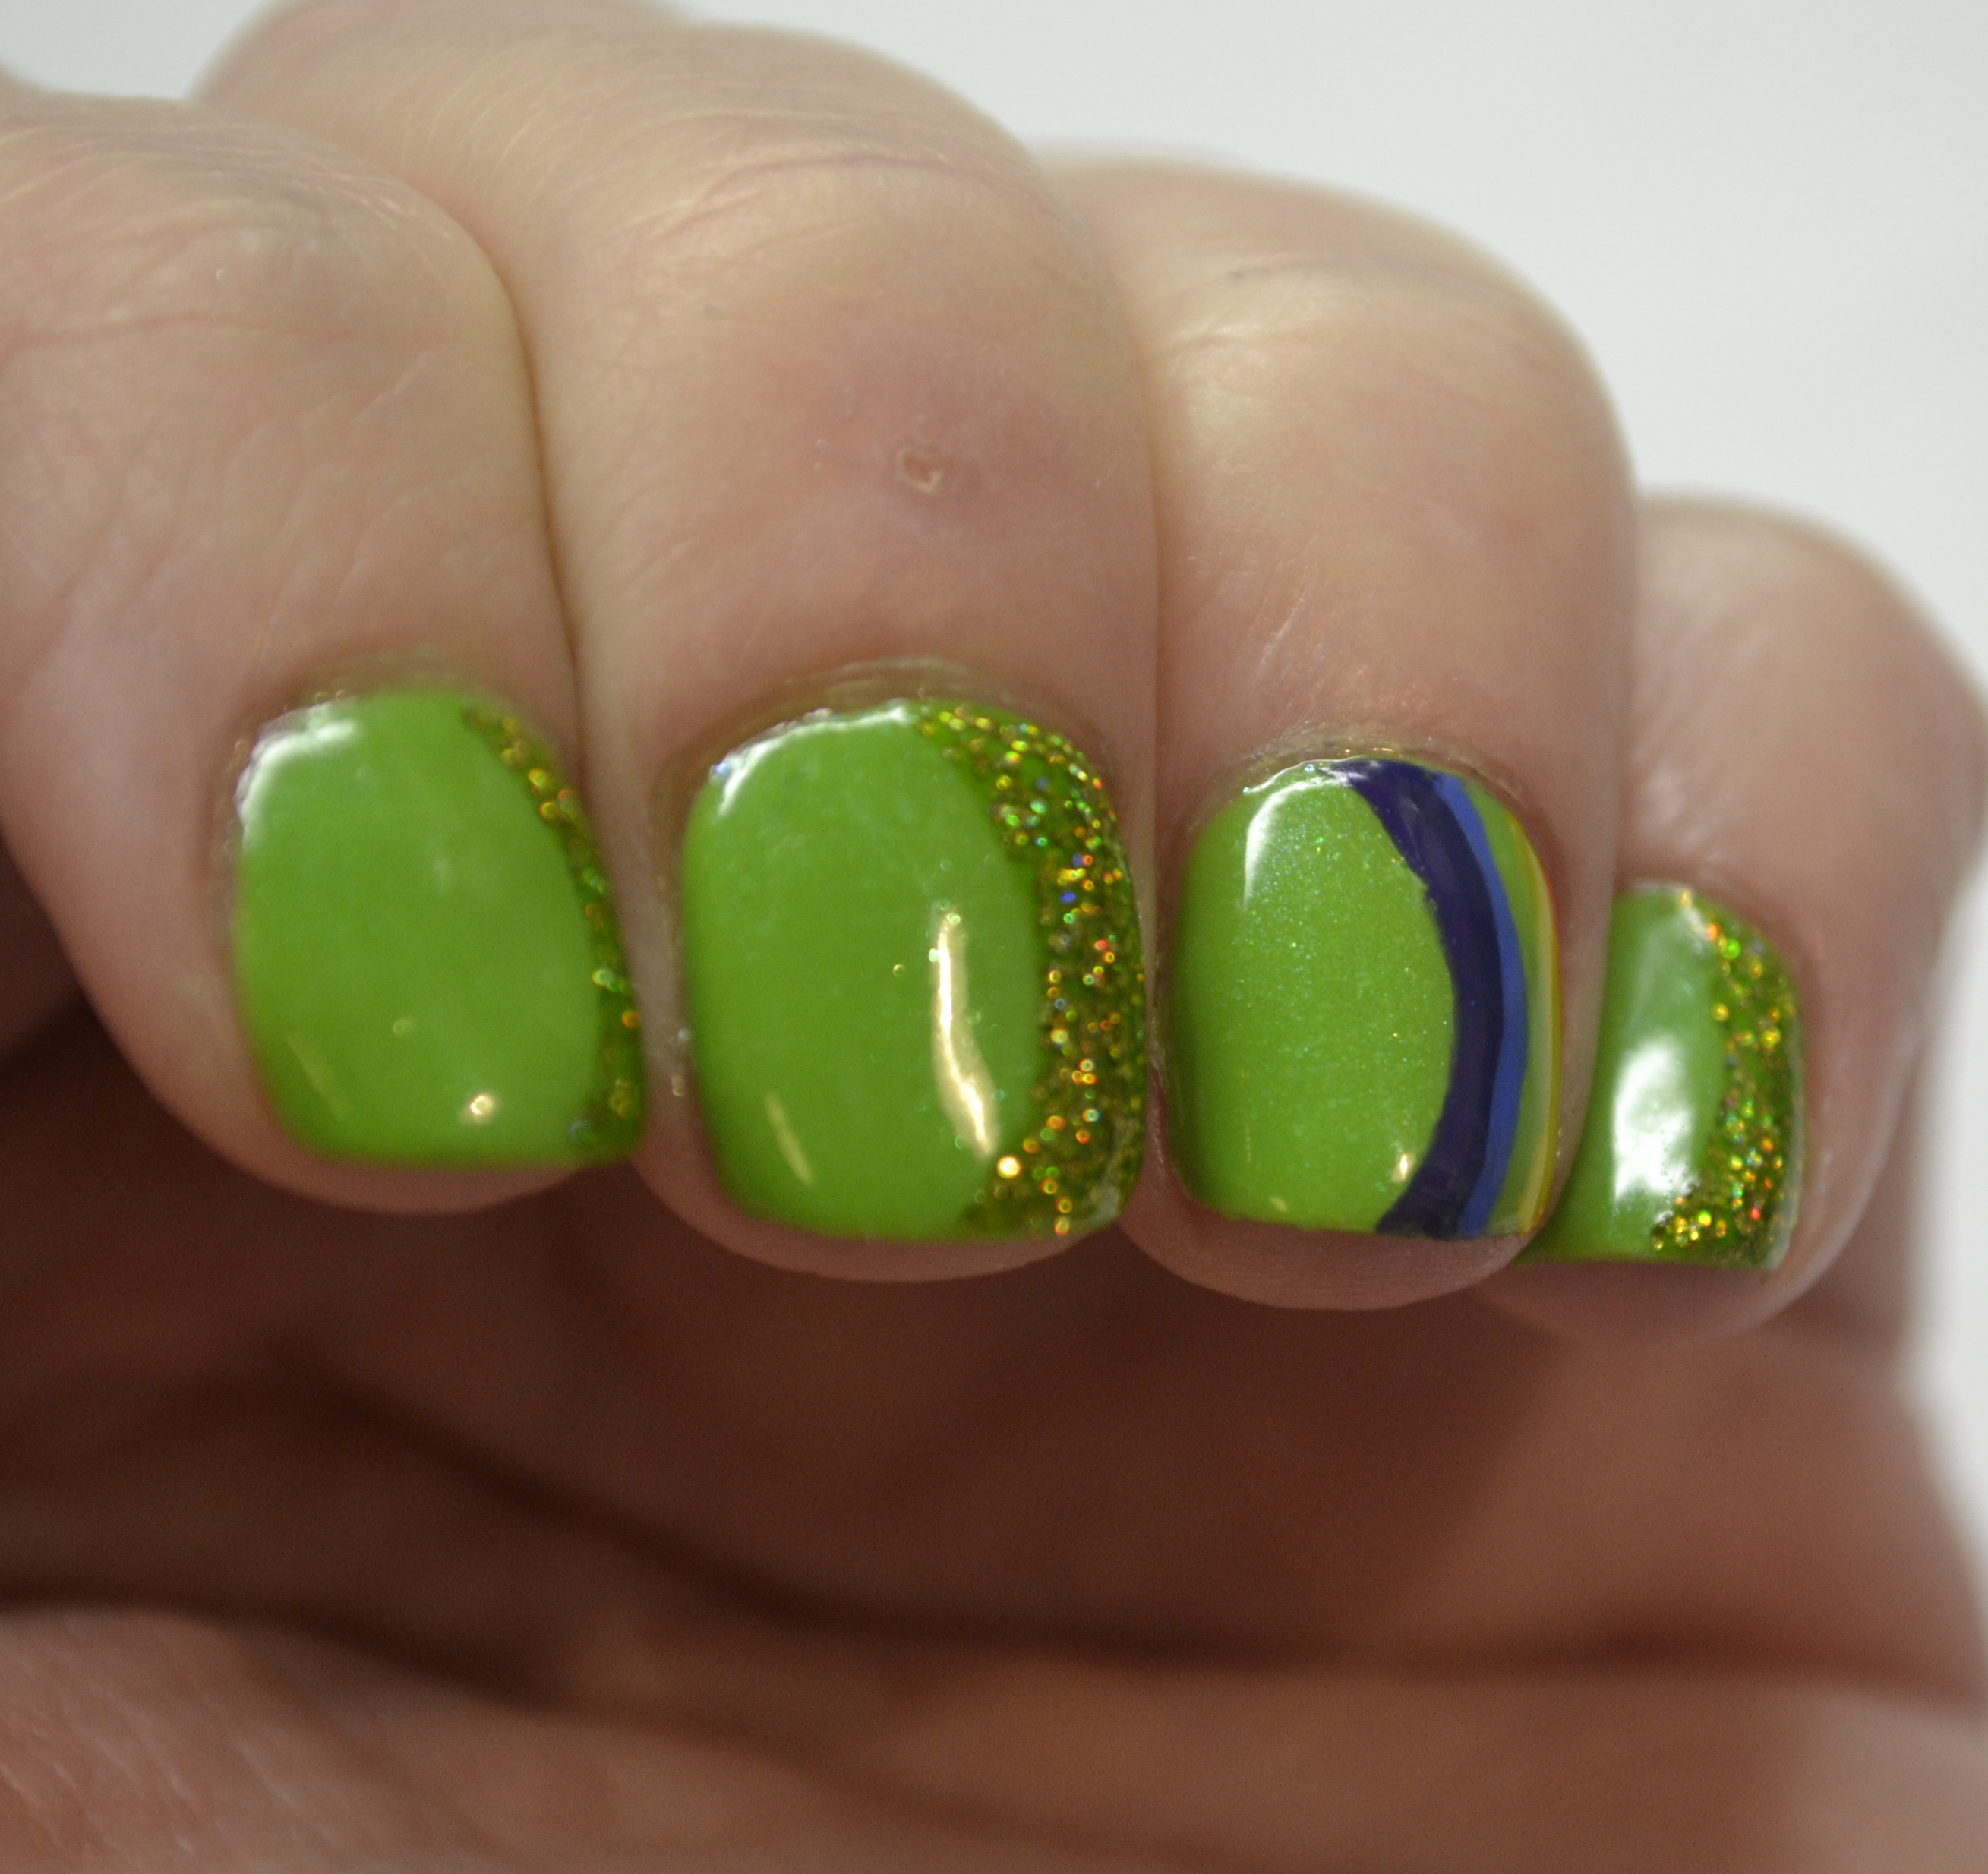 St Patricks nails | Nails, the Final Frontier